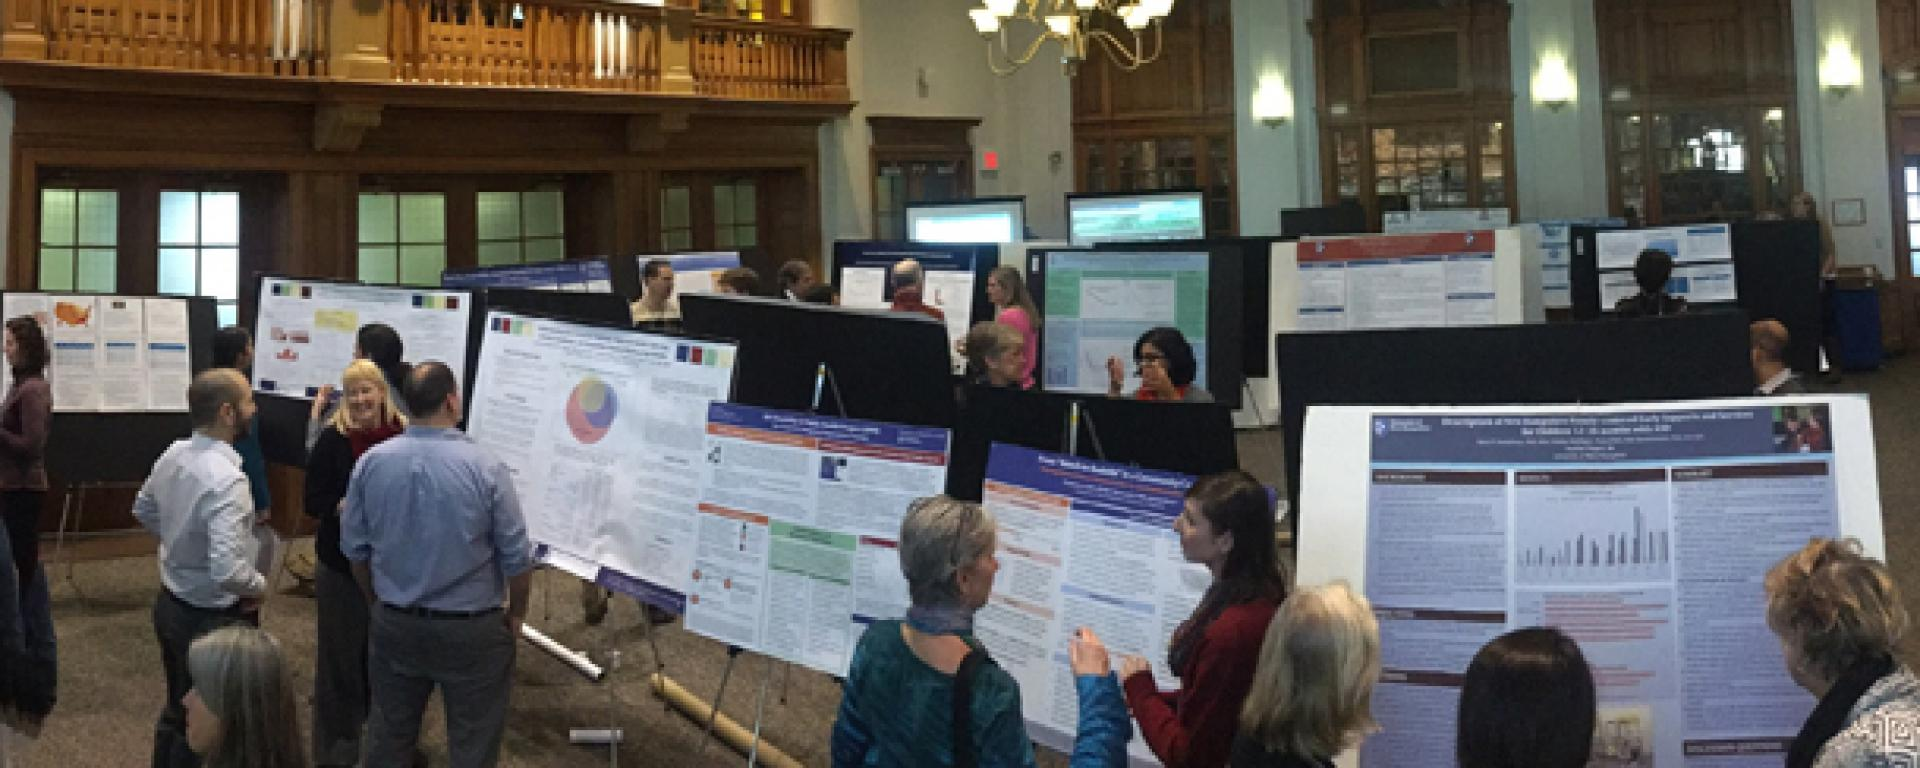 chhs research celebration poster review